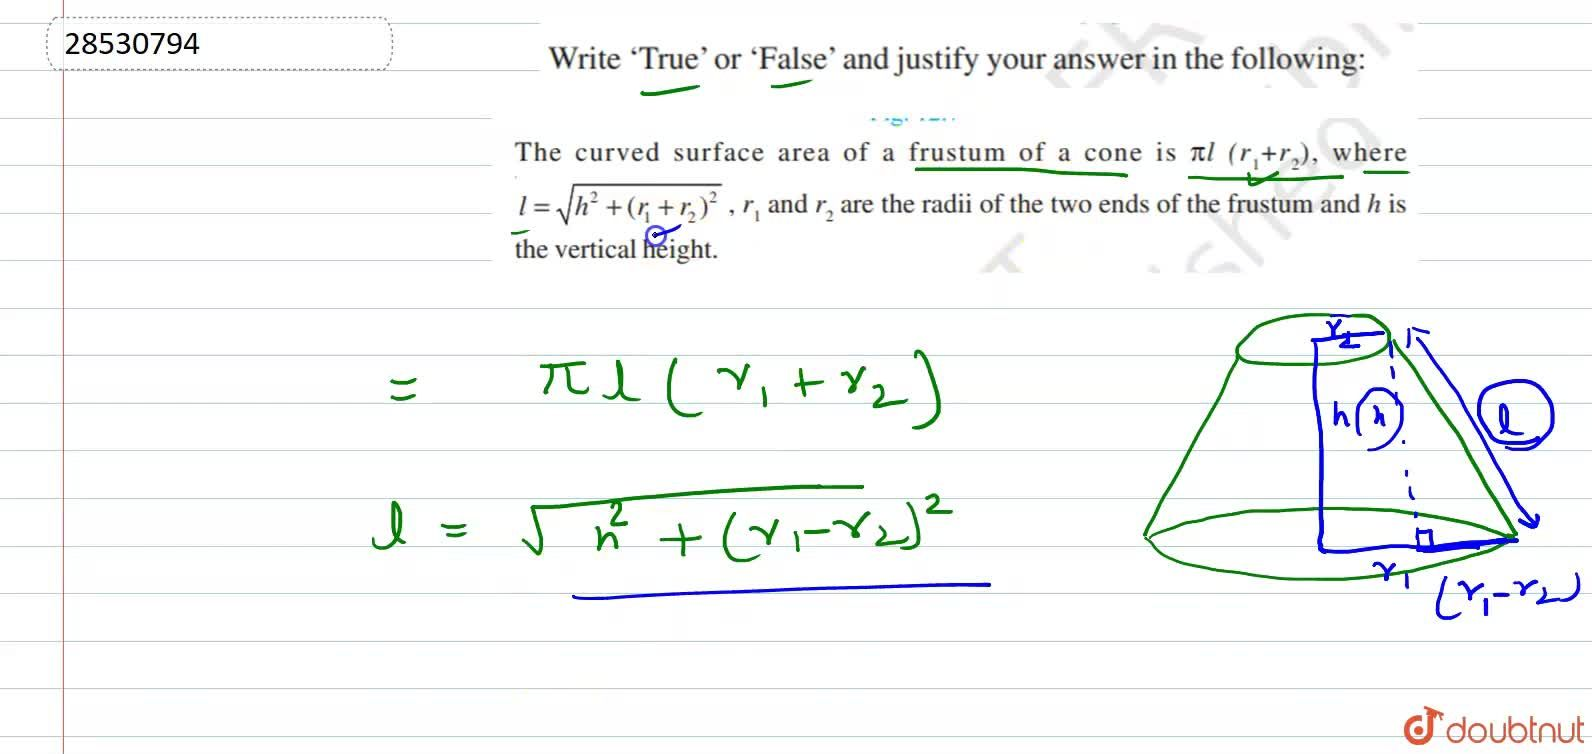 Solution for The curved surface area of  frustum of a cone is